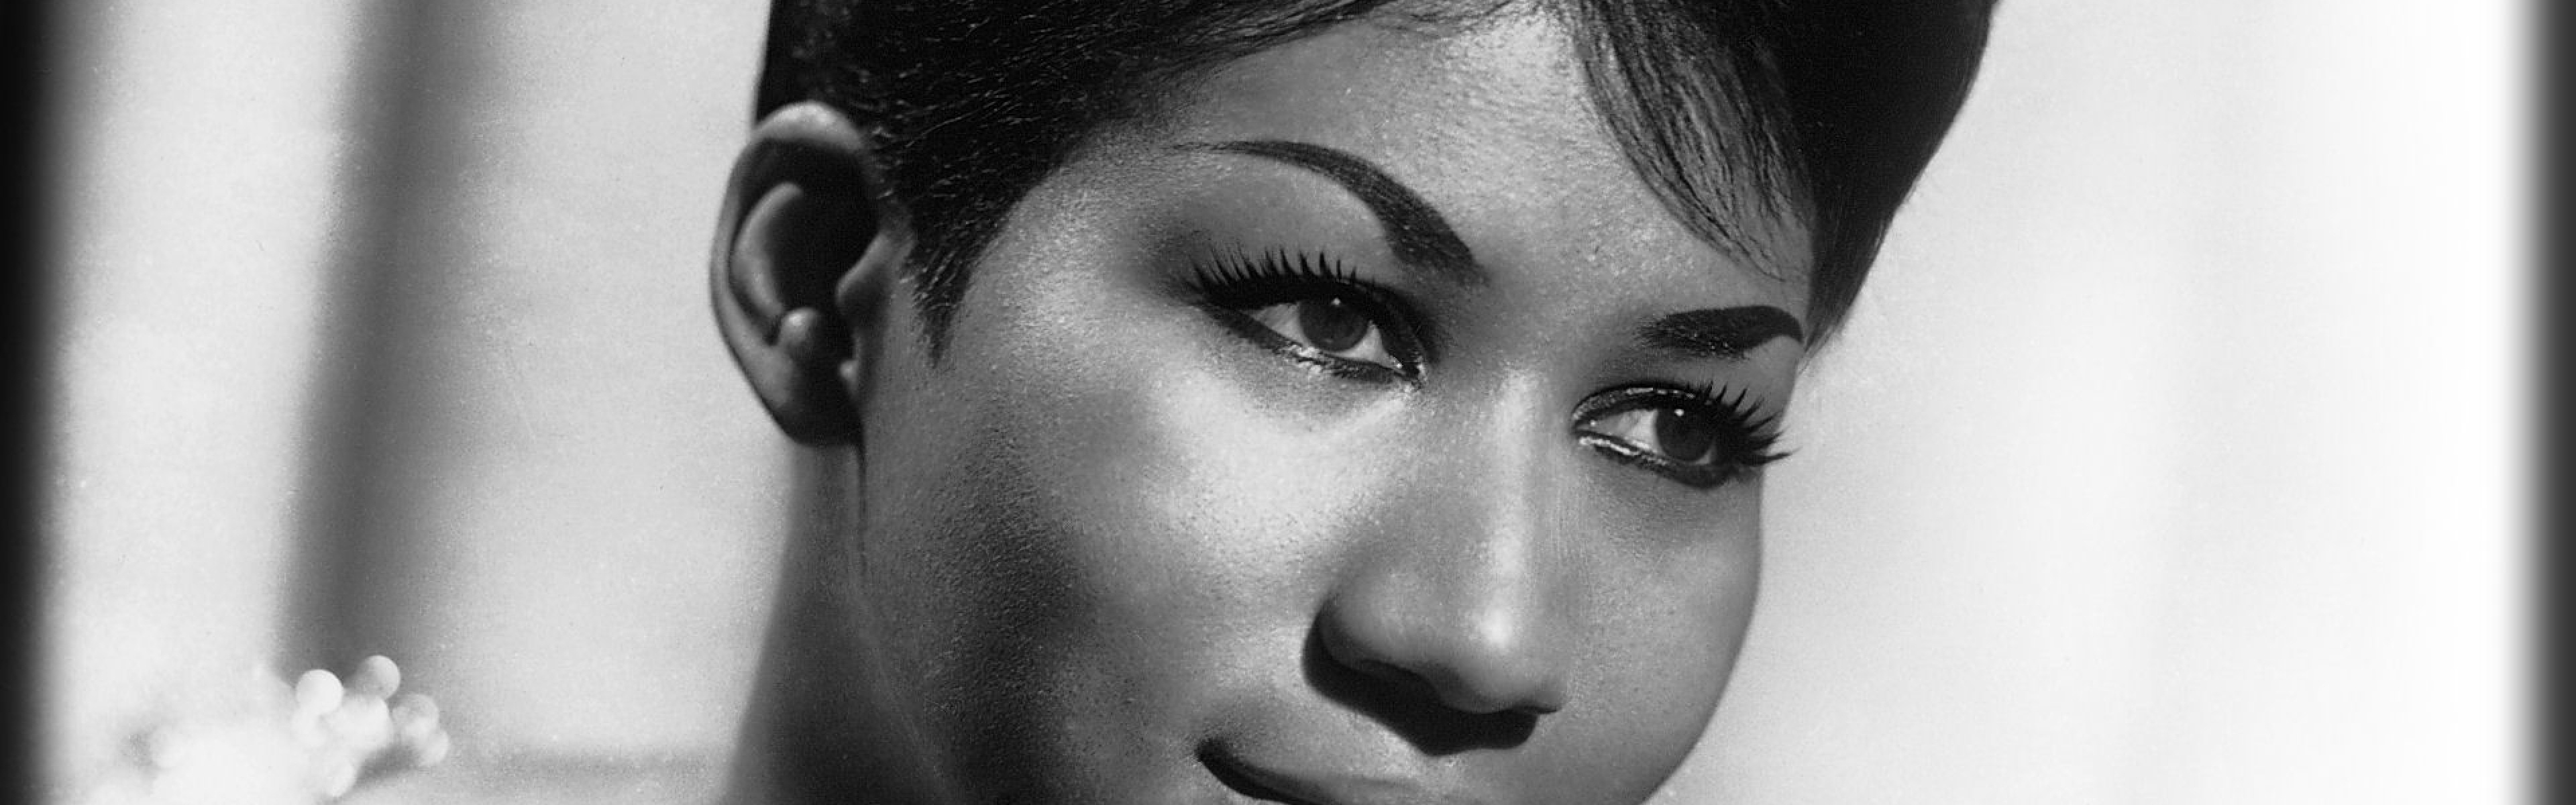 3840x1200 Wallpaper aretha franklin, face, haircut, makeup, cheeks